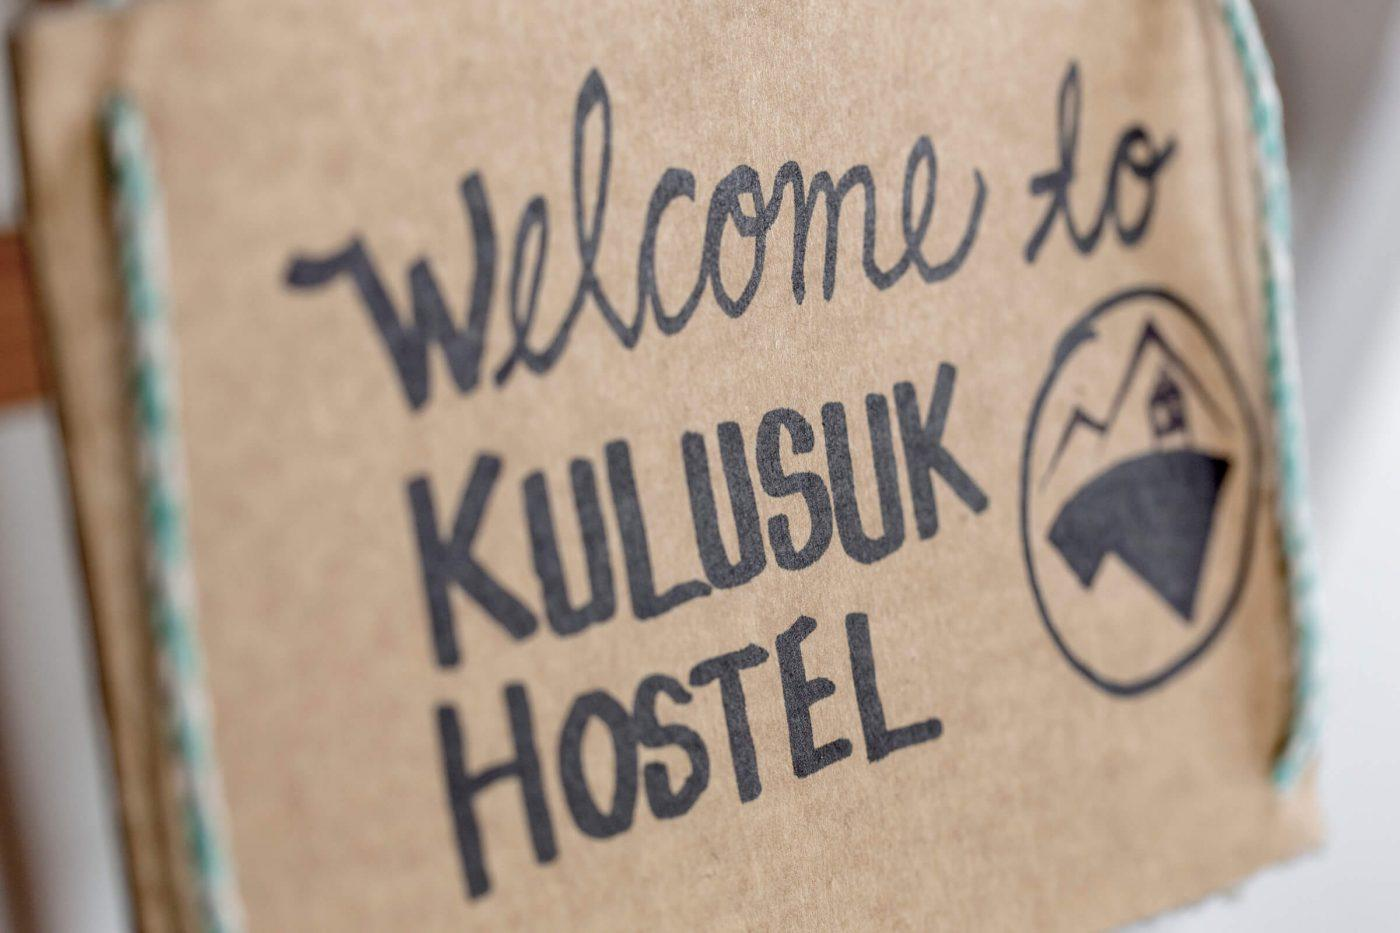 Welcome sign in Kulusuk Hostel in East Greenland. Photo by Icelandic Mountain Guides